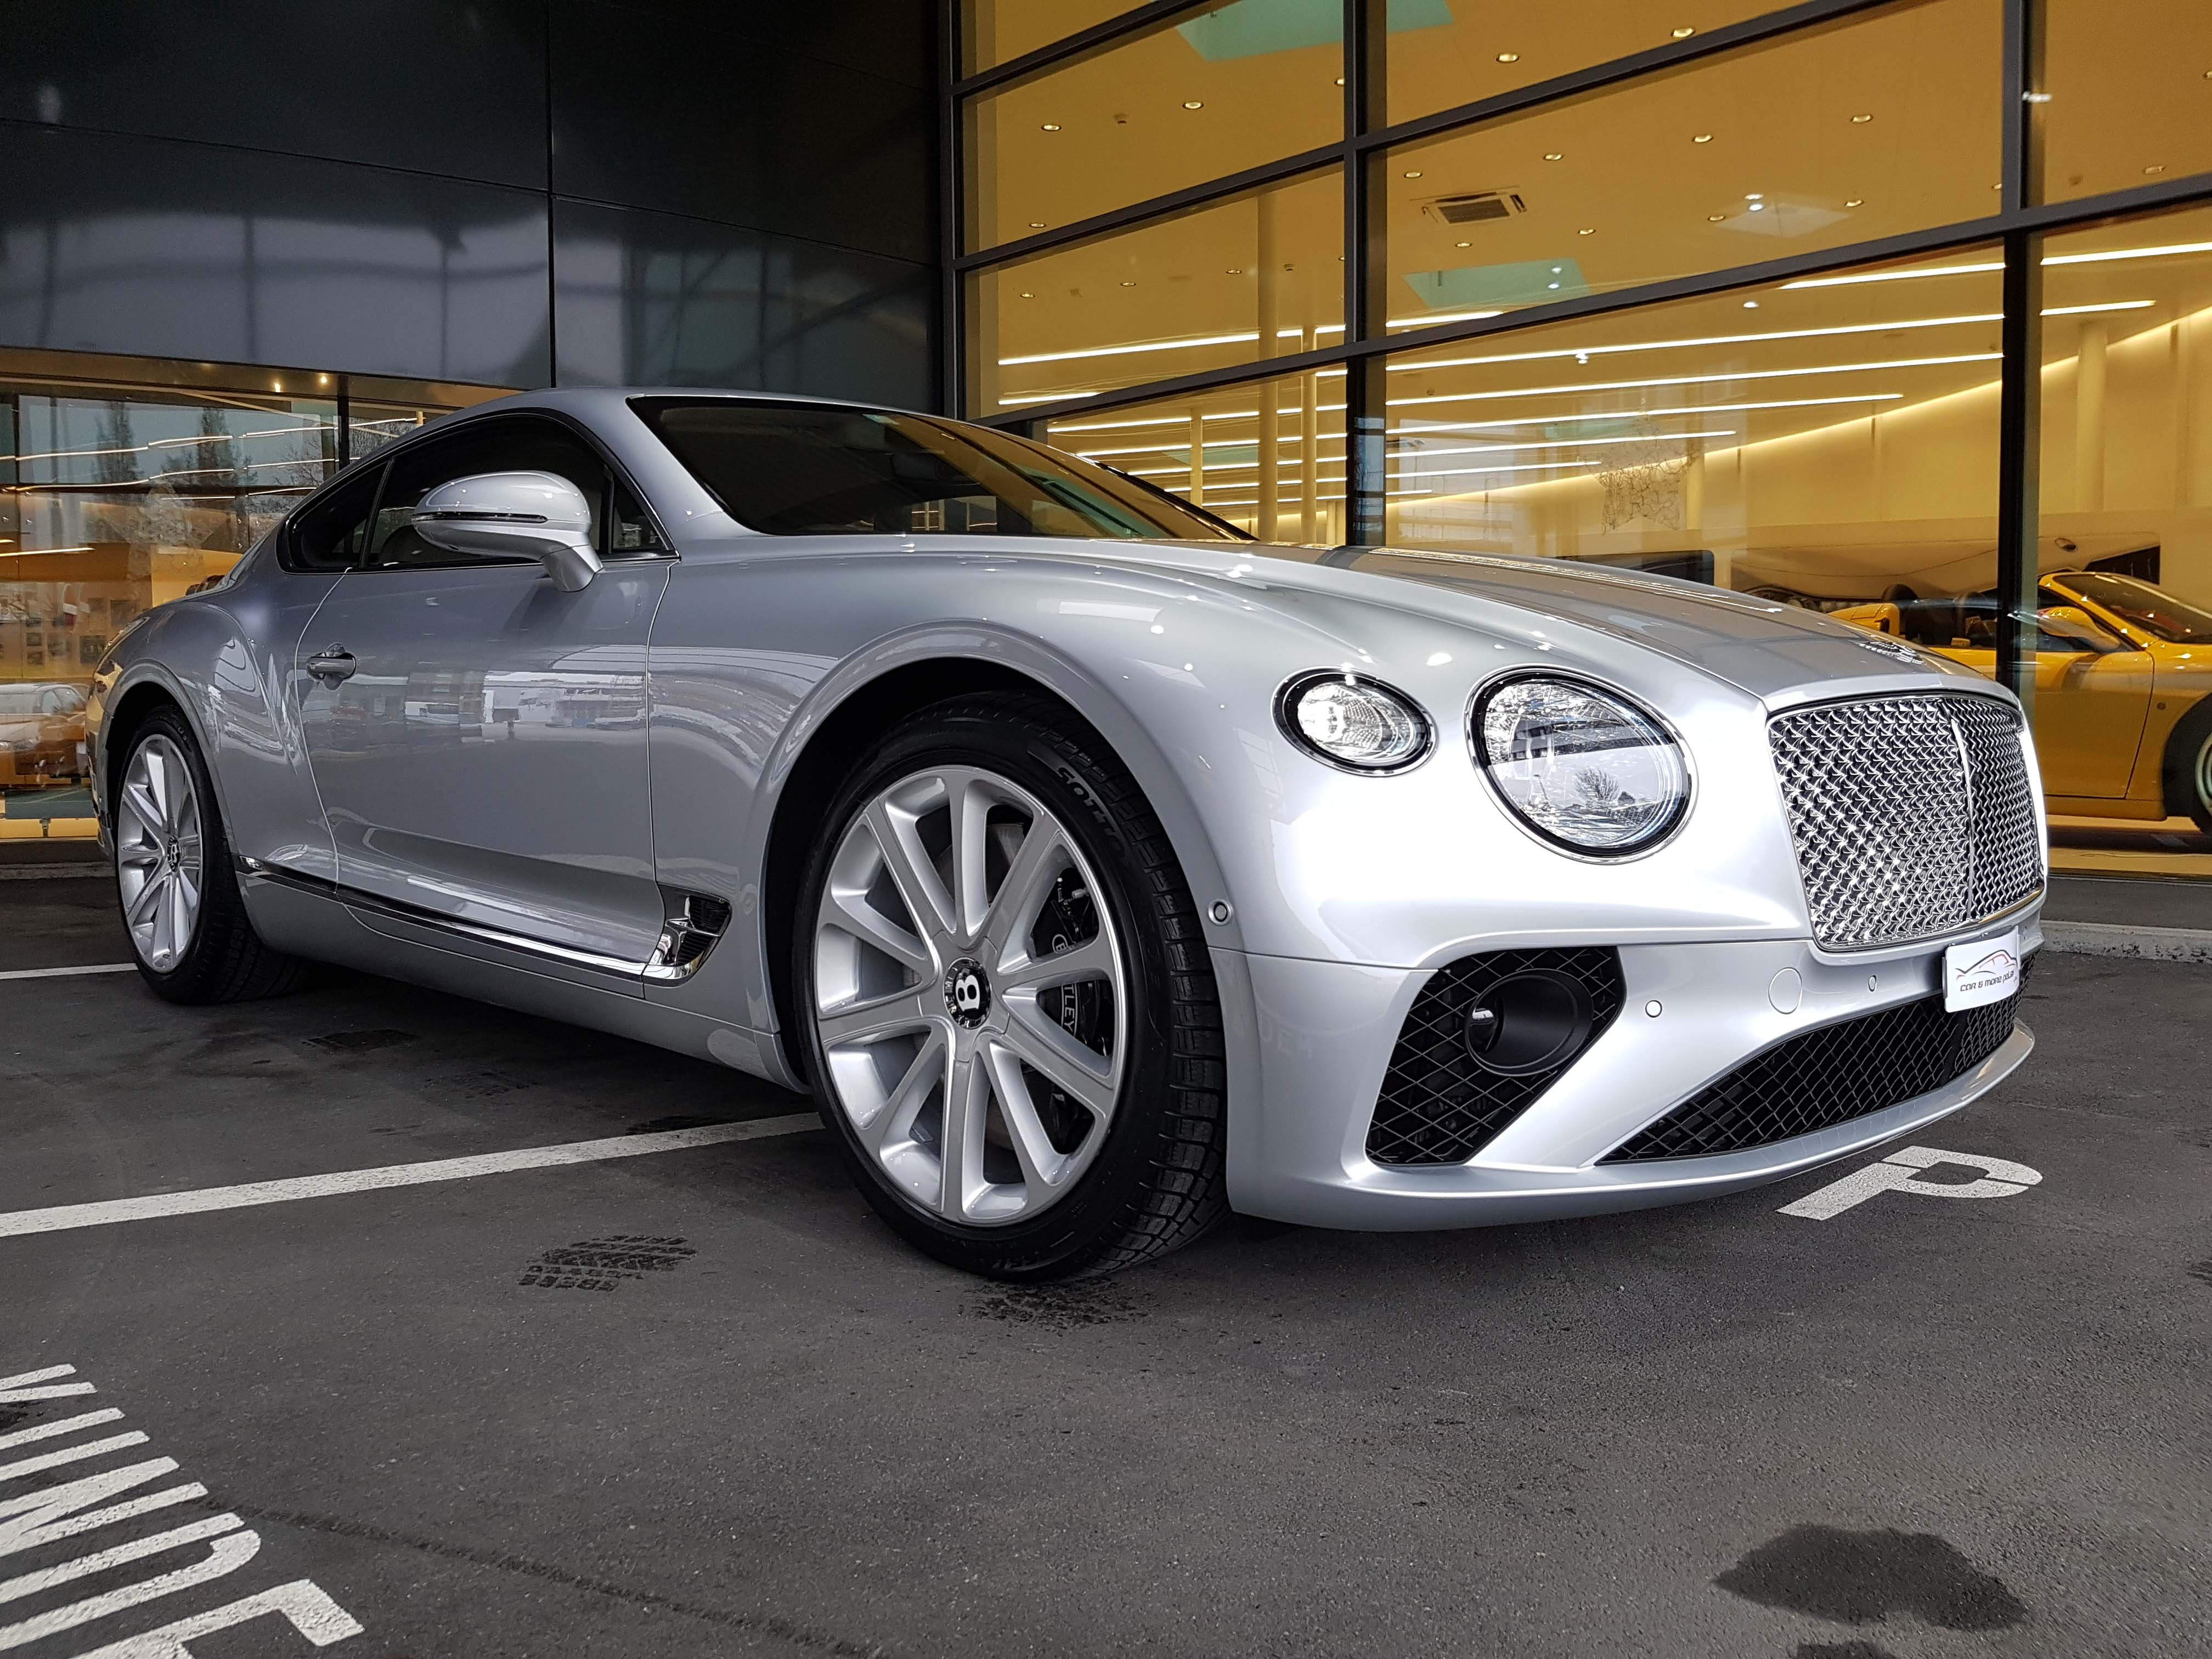 Reinigung Bentley - Car & more polish by Weider